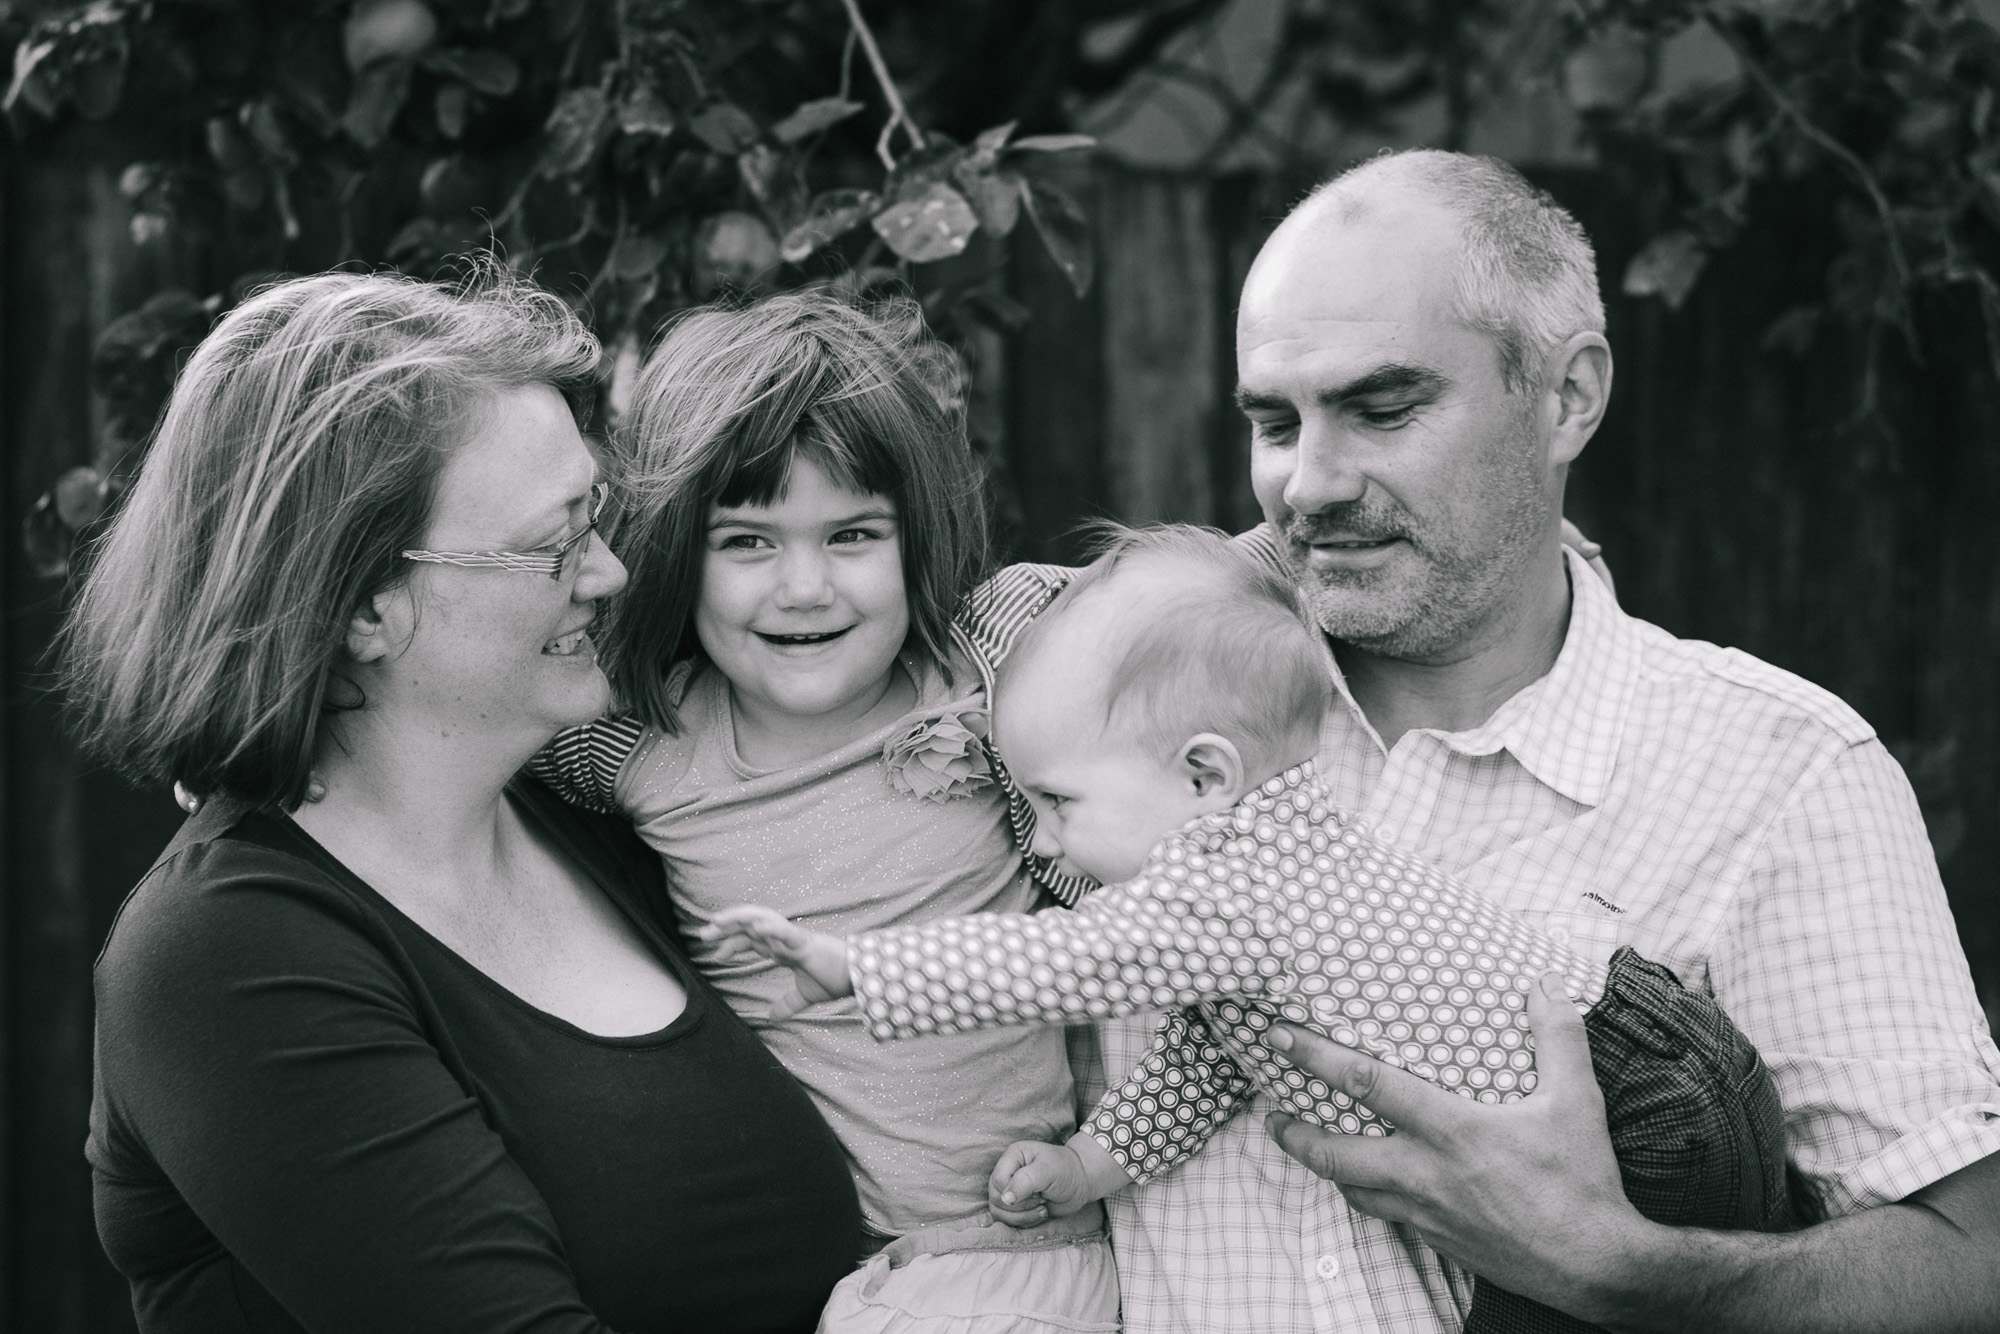 The-Parkers-Quirky-Fun-Family-Photos-02